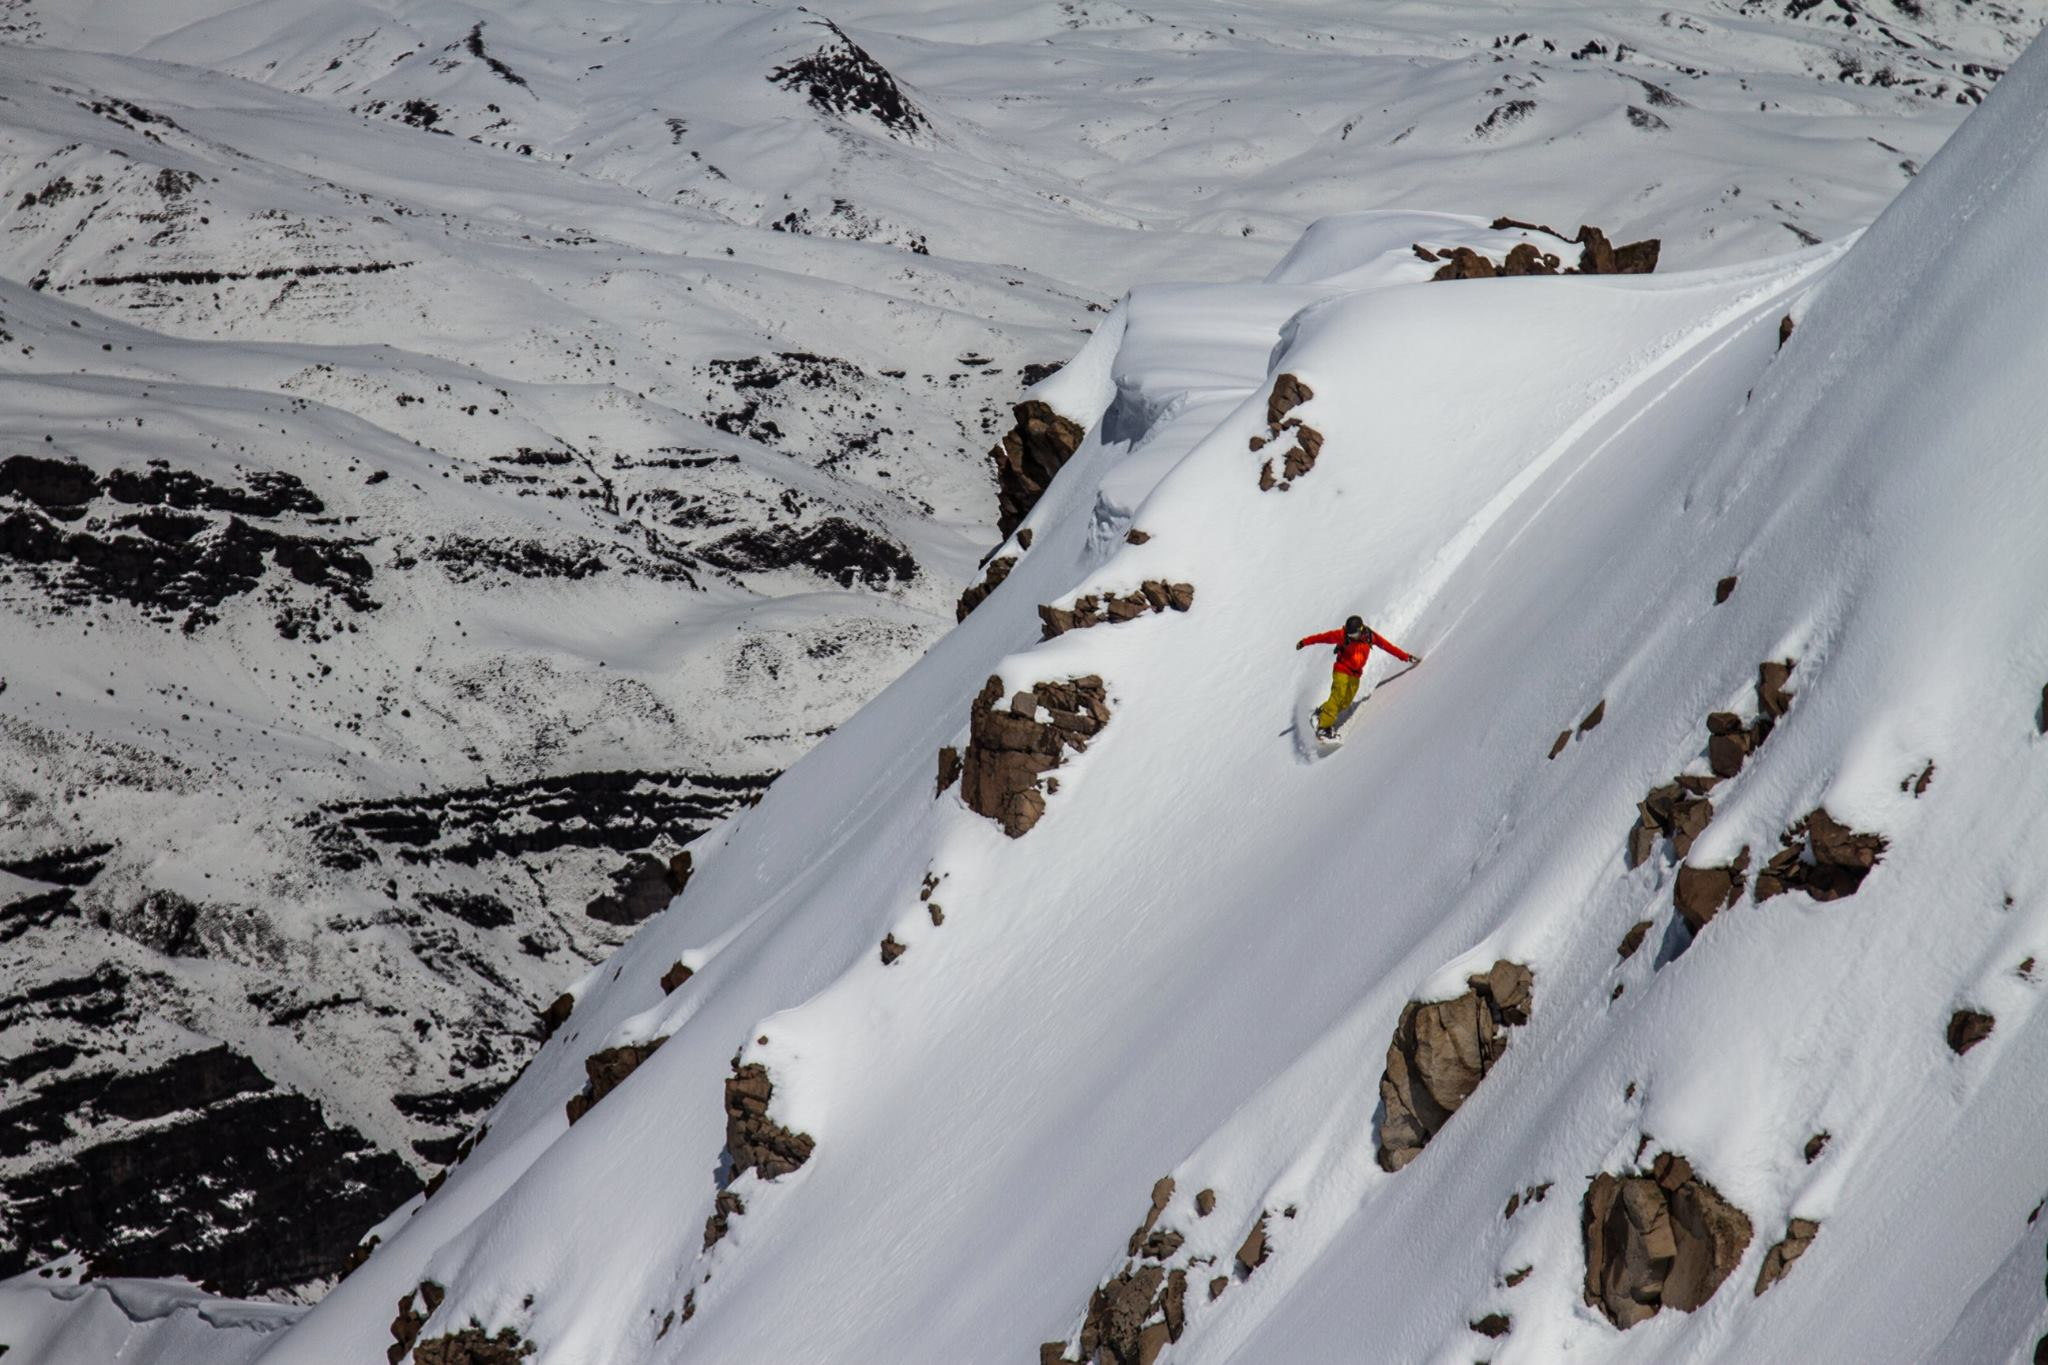 Southern Hemi Couloir (Photo: Ian Gil)